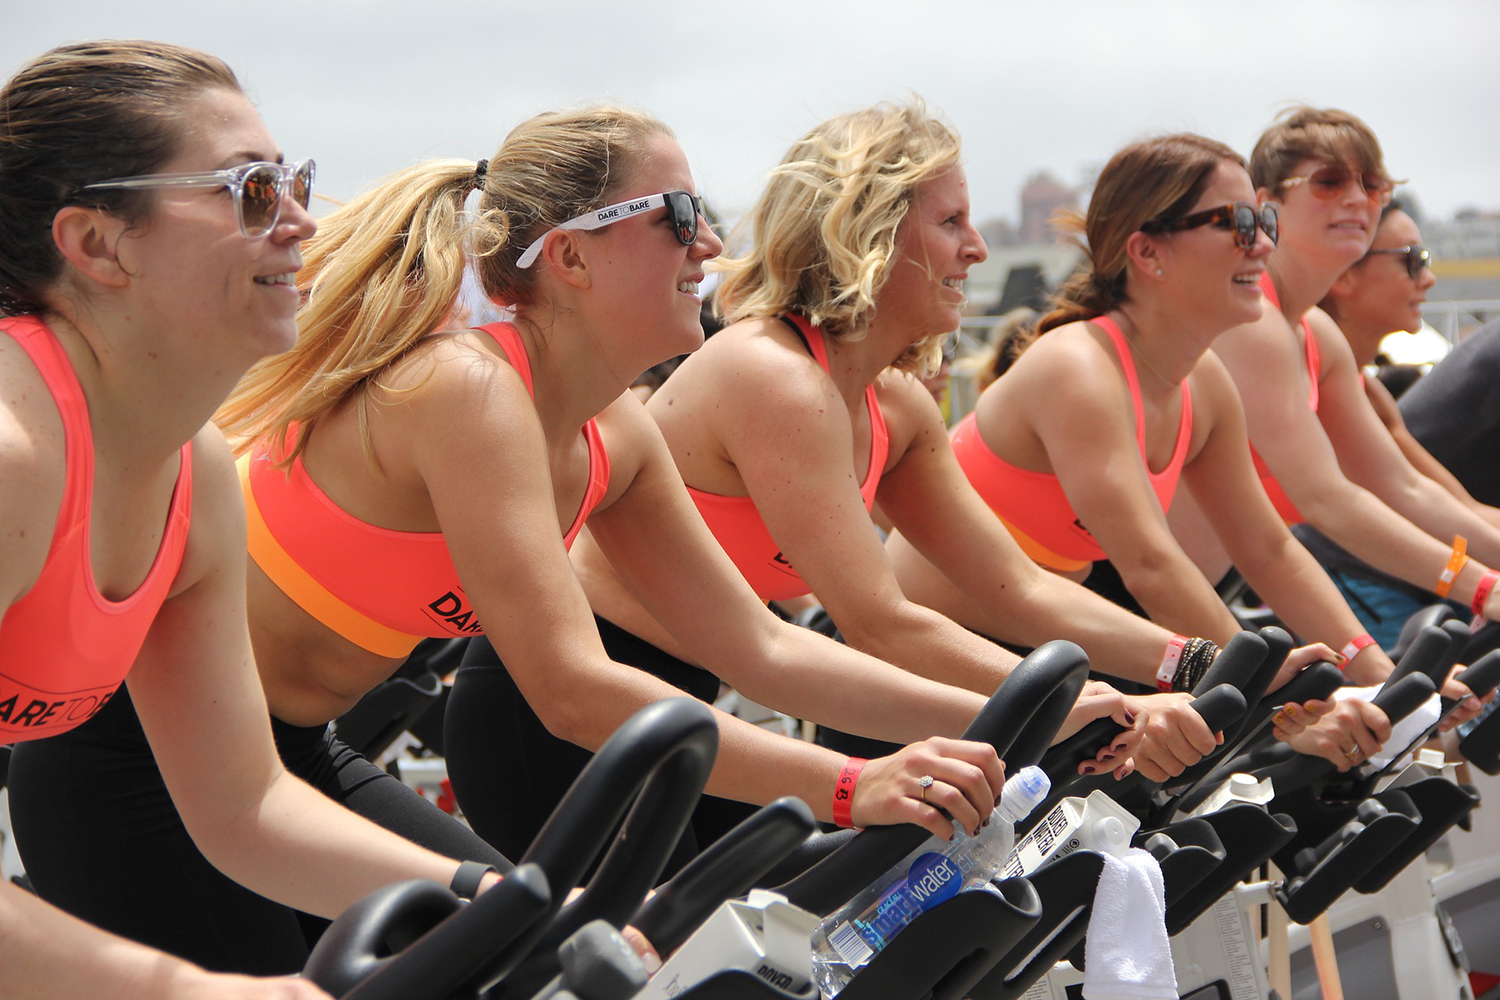 Fitness Group Doing Cardio on Stationary Bikes Outdoors